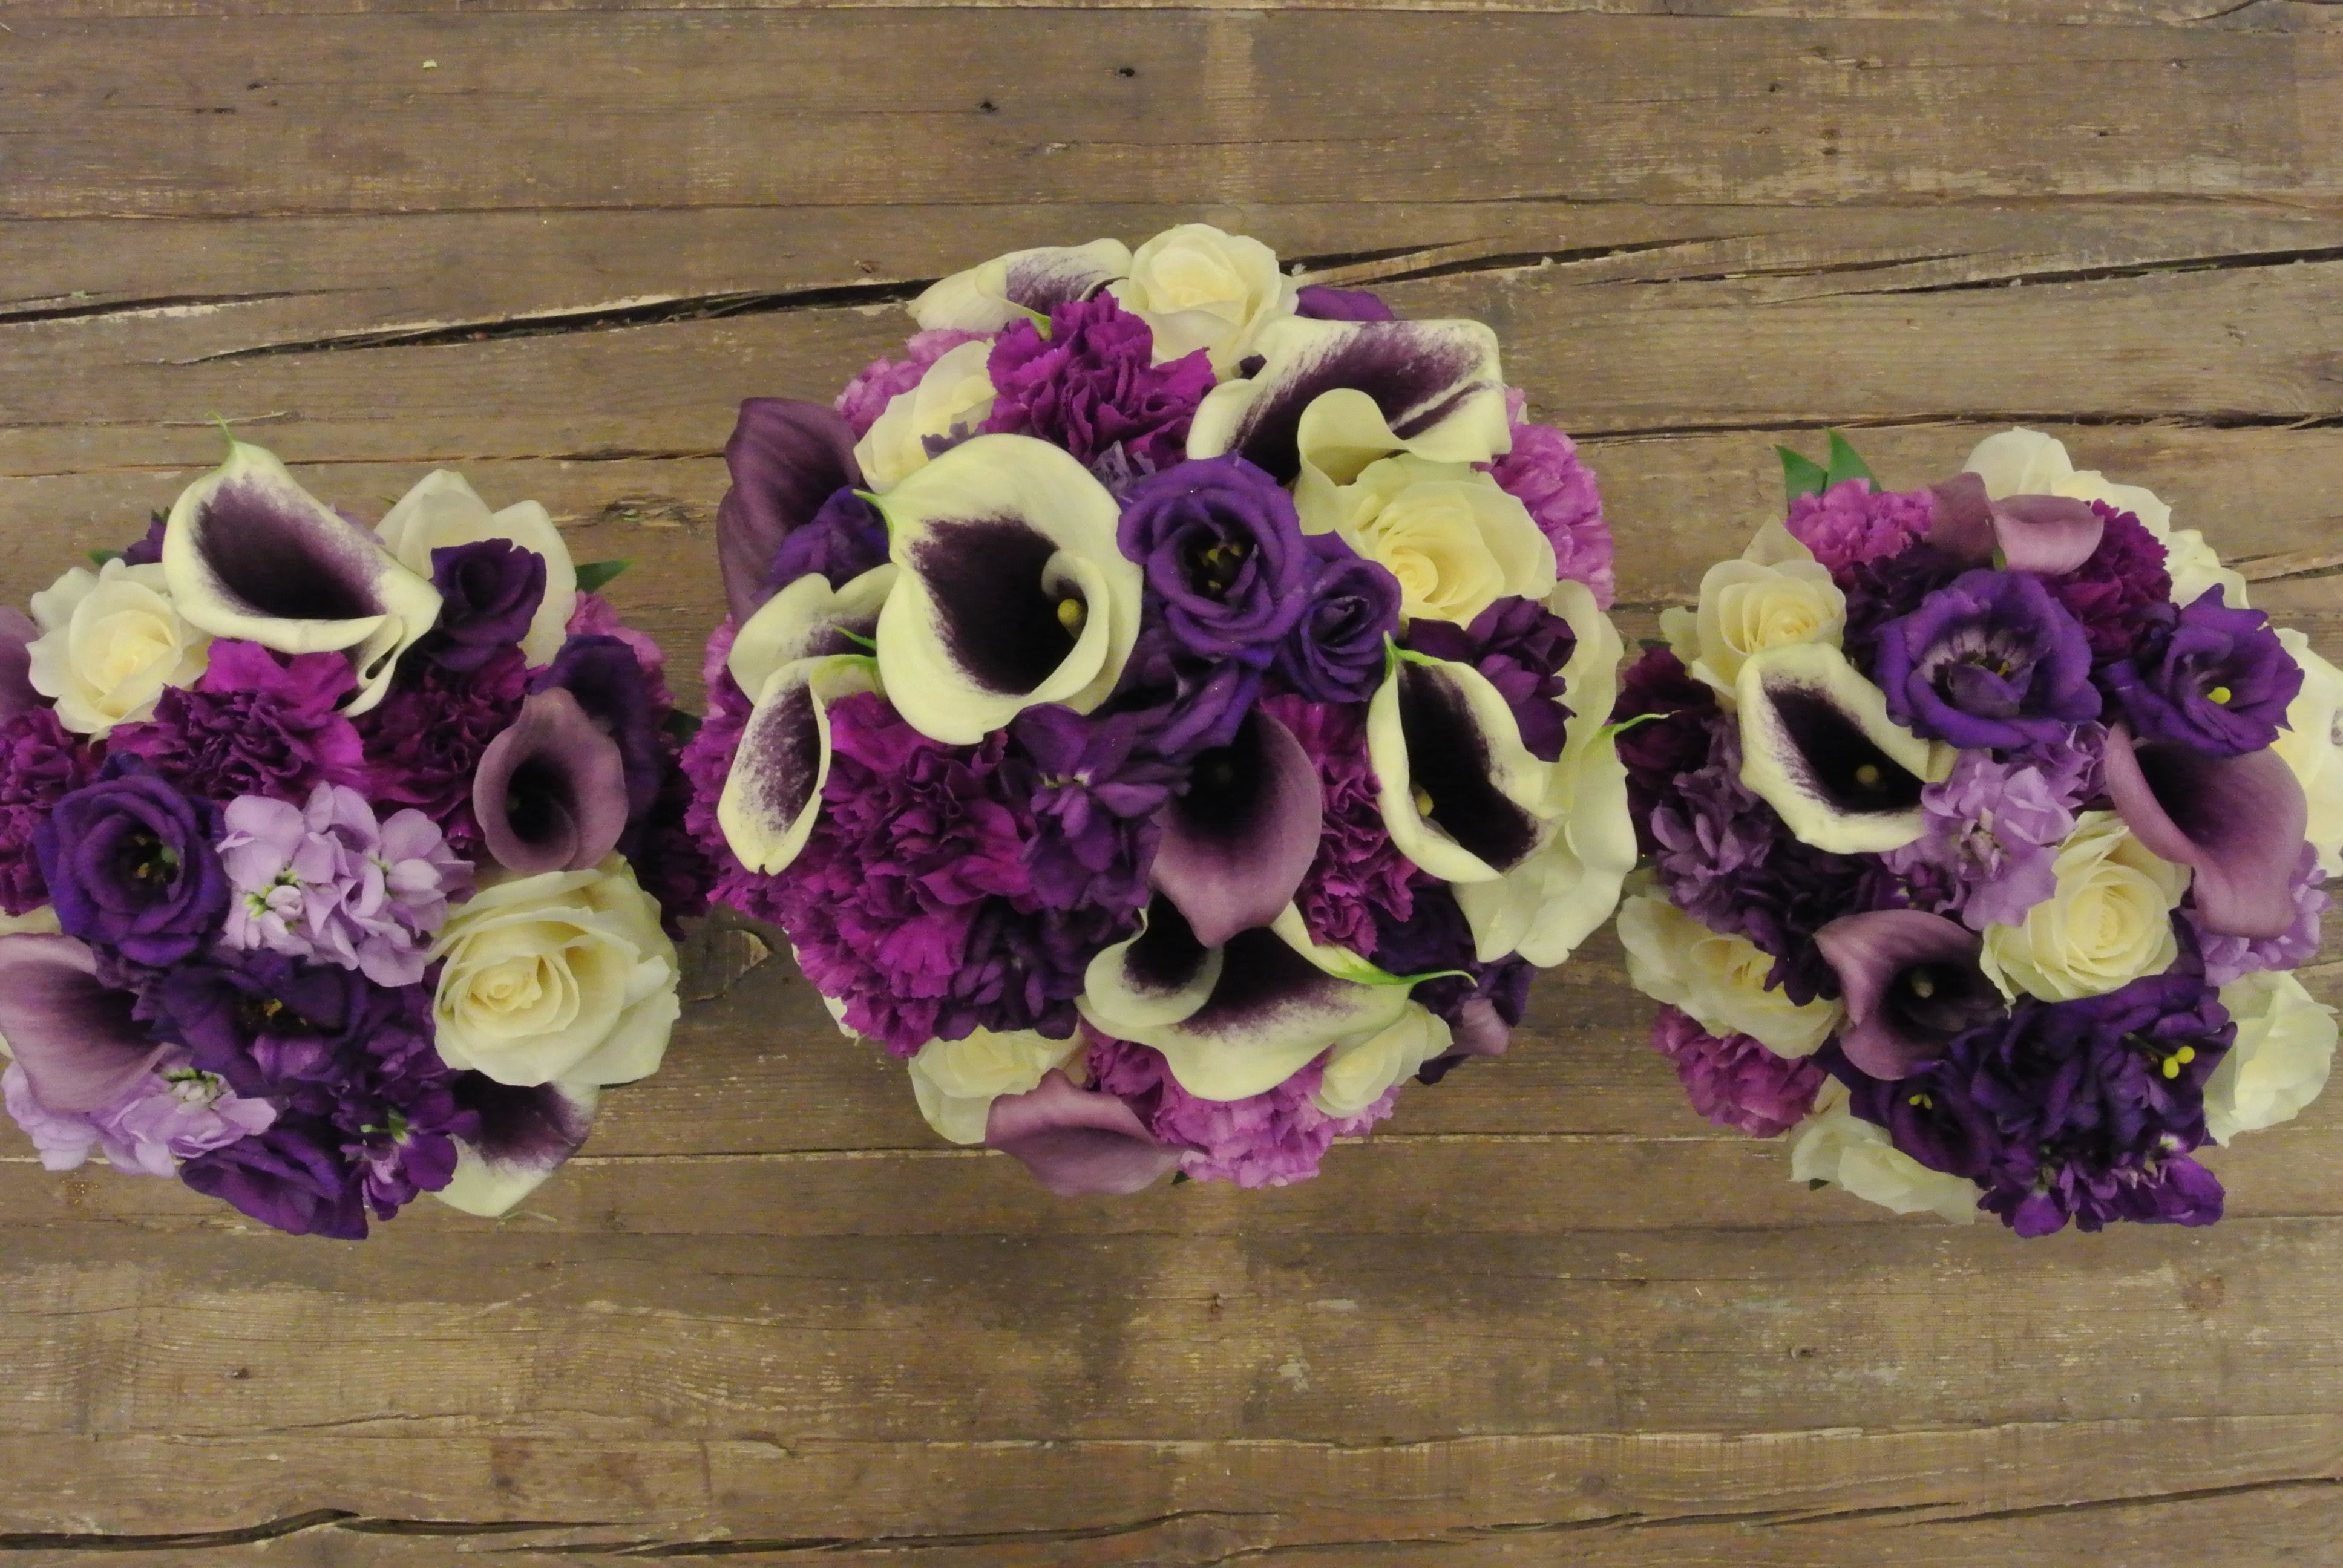 Purple bridal bouquets with picaso calla lilies carnations stocks purple bridal bouquets with picaso calla lilies carnations stocks lisianthus and roses designed by forget me not flowers izmirmasajfo